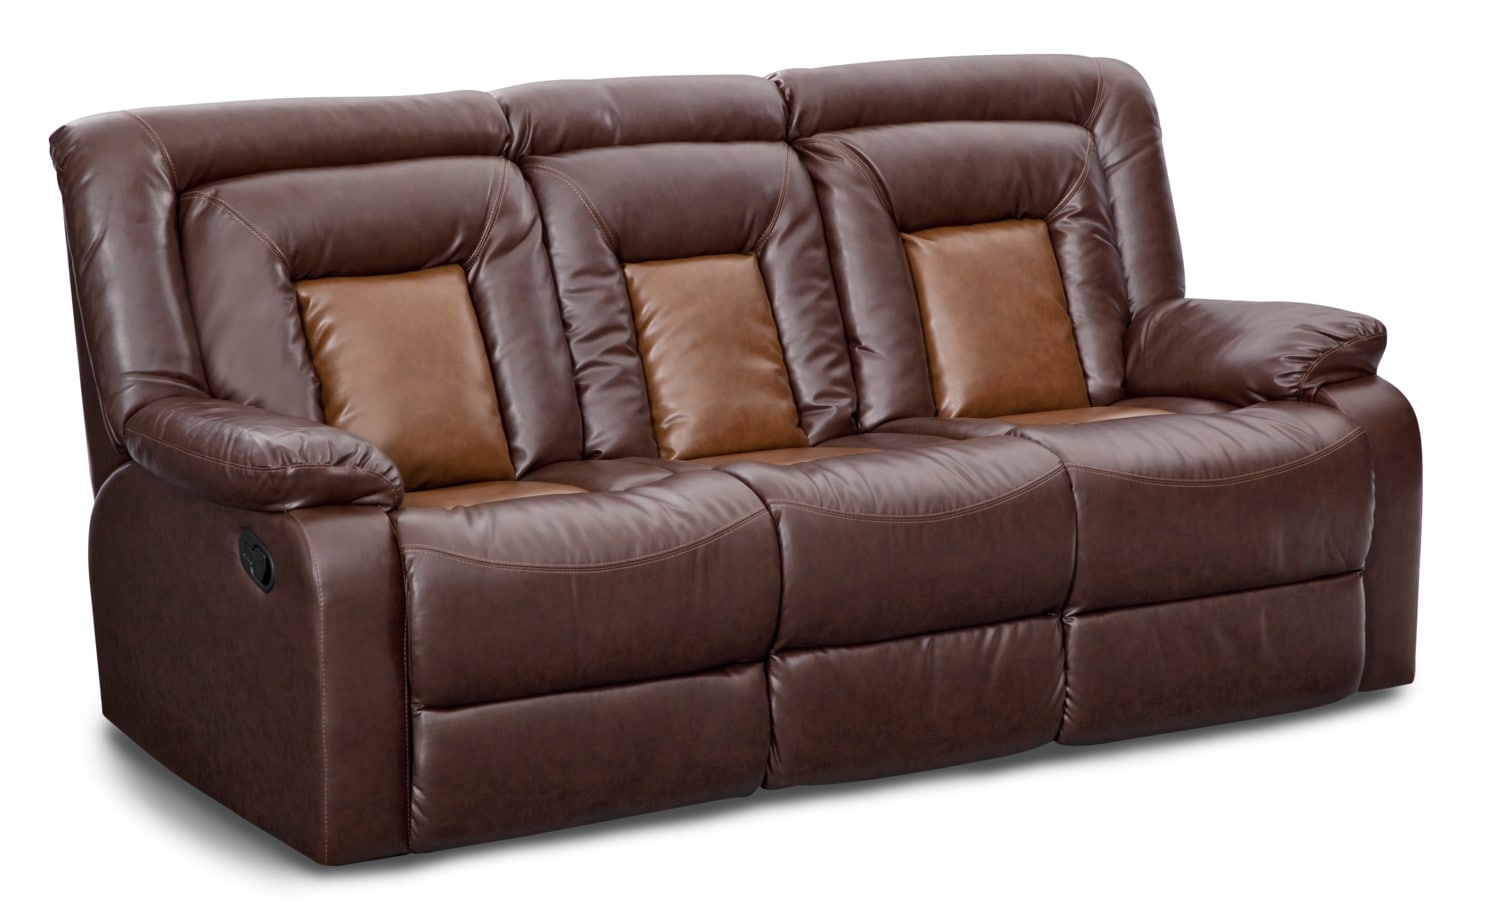 Mustang dual reclining sofa dual reclining loveseat and recliner set brown american Sofa loveseat